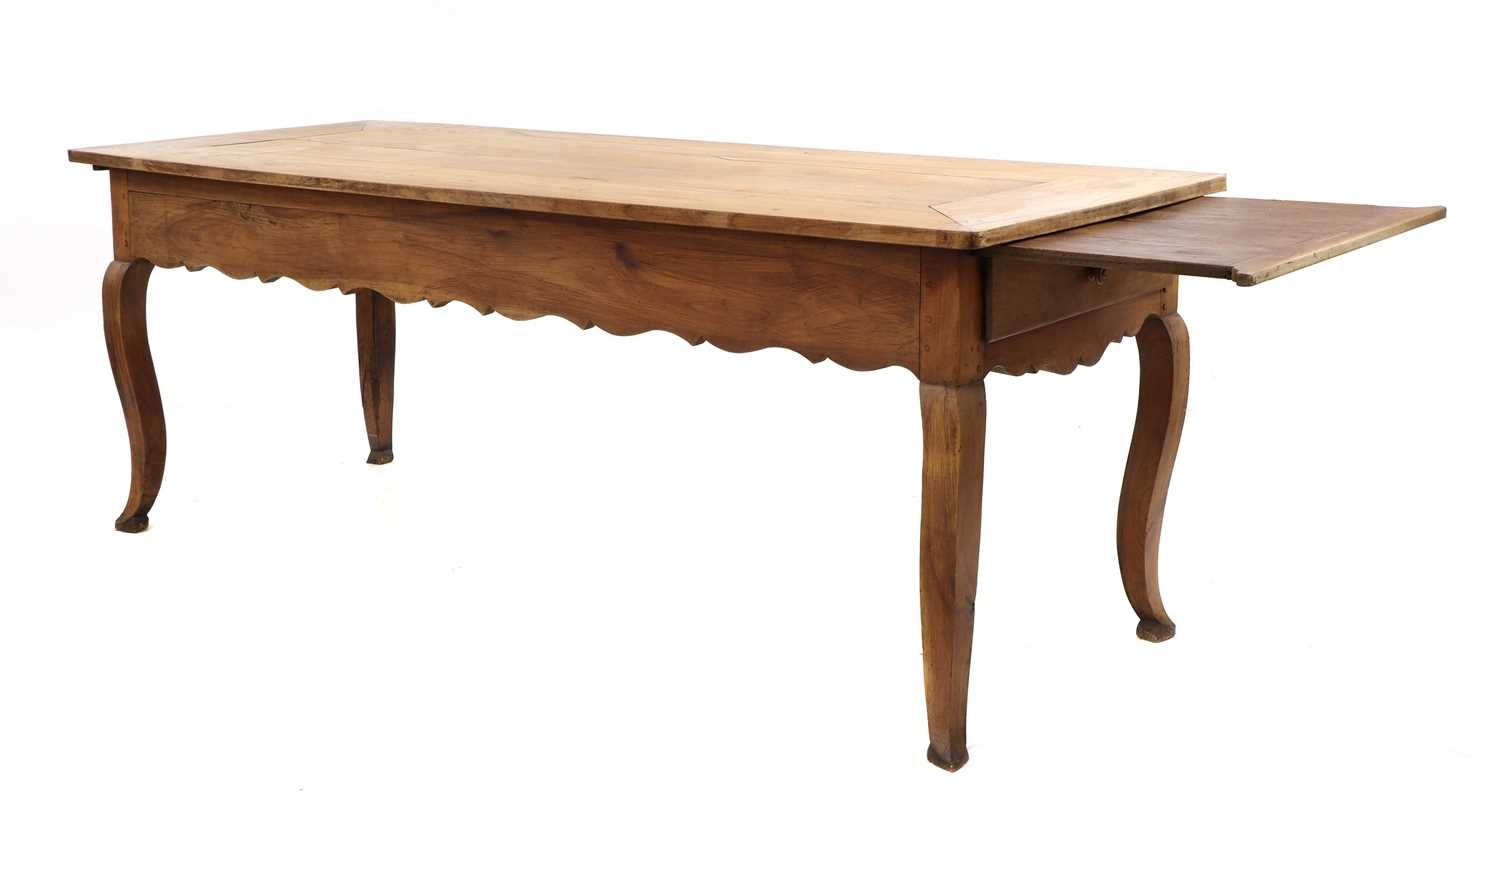 A French provincial sycamore kitchen table, - Image 4 of 10